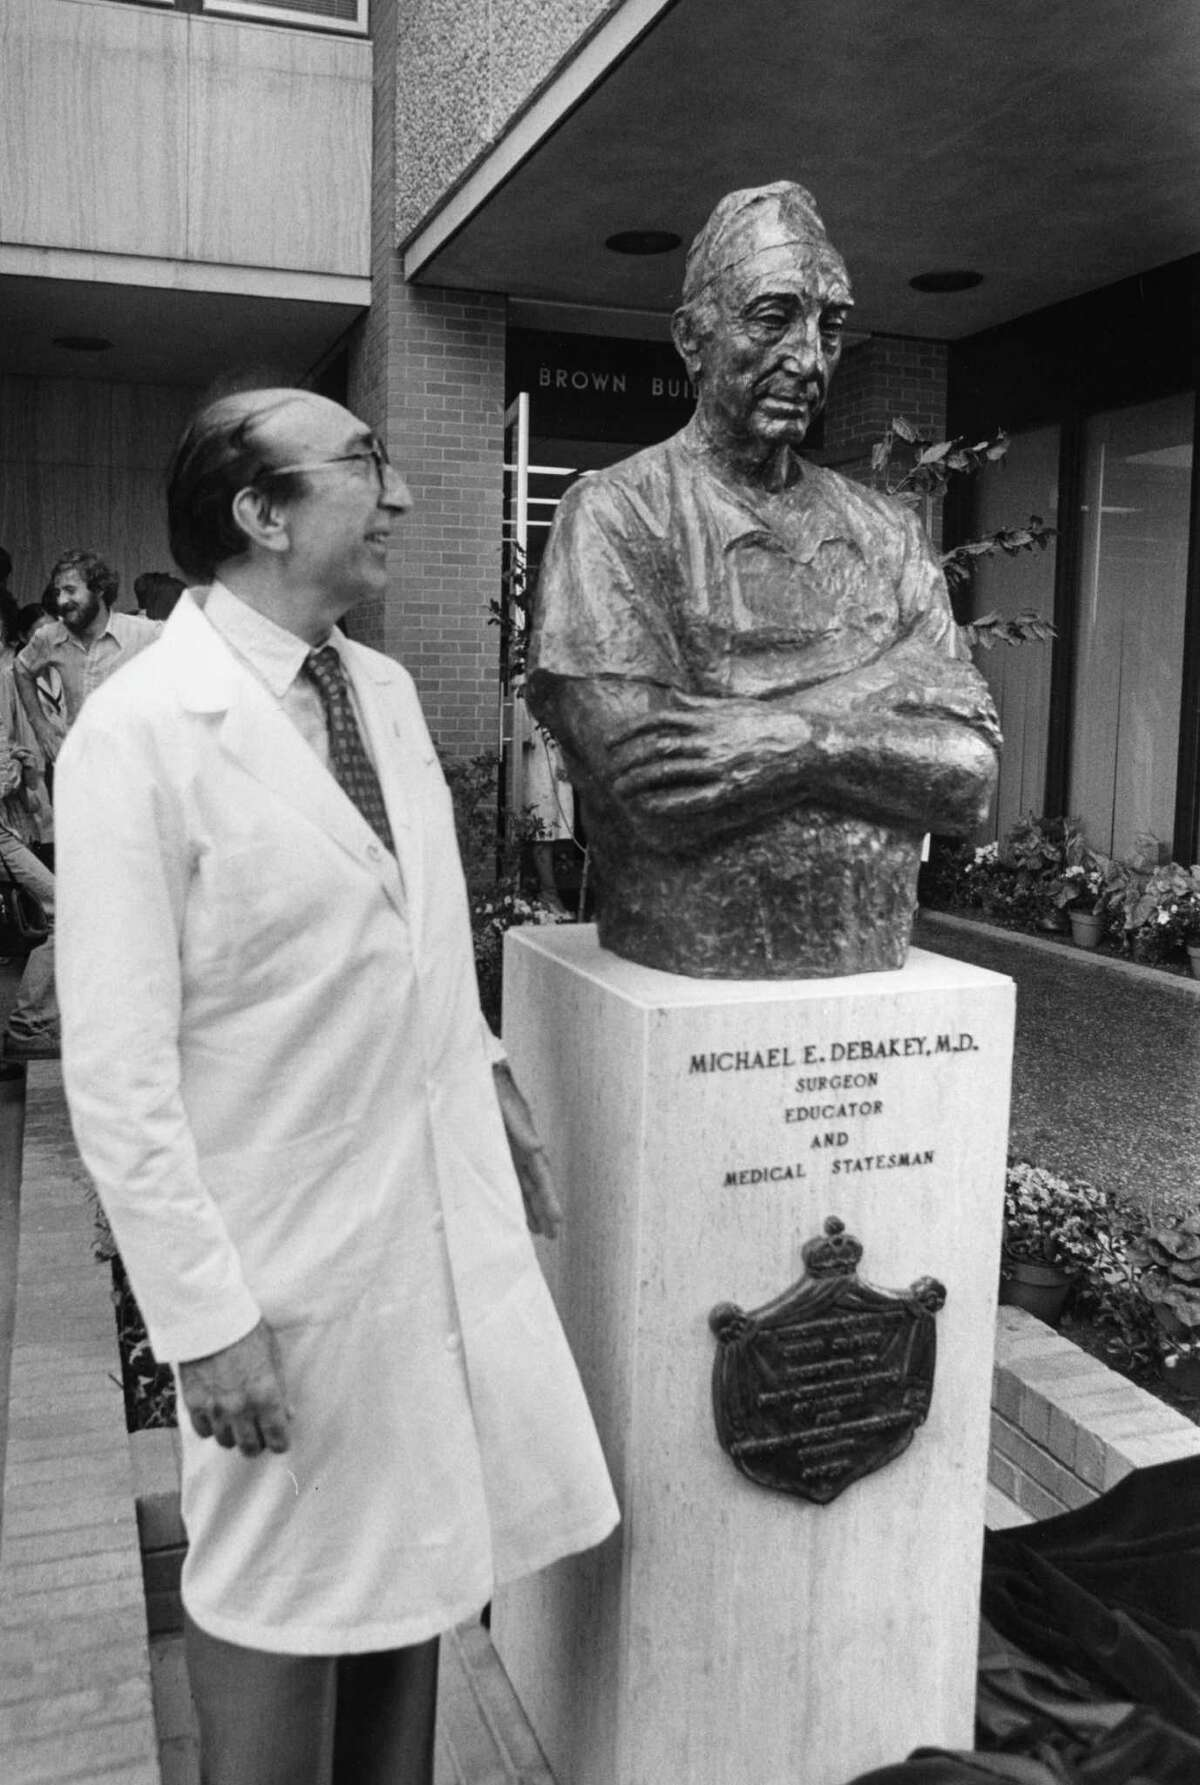 05/12/1978 -- Heart surgeon Dr. Michael DeBakey stands beside the bust of himself at the Brown Cardiovascular Research and Training Center. (Houston Post file photo)